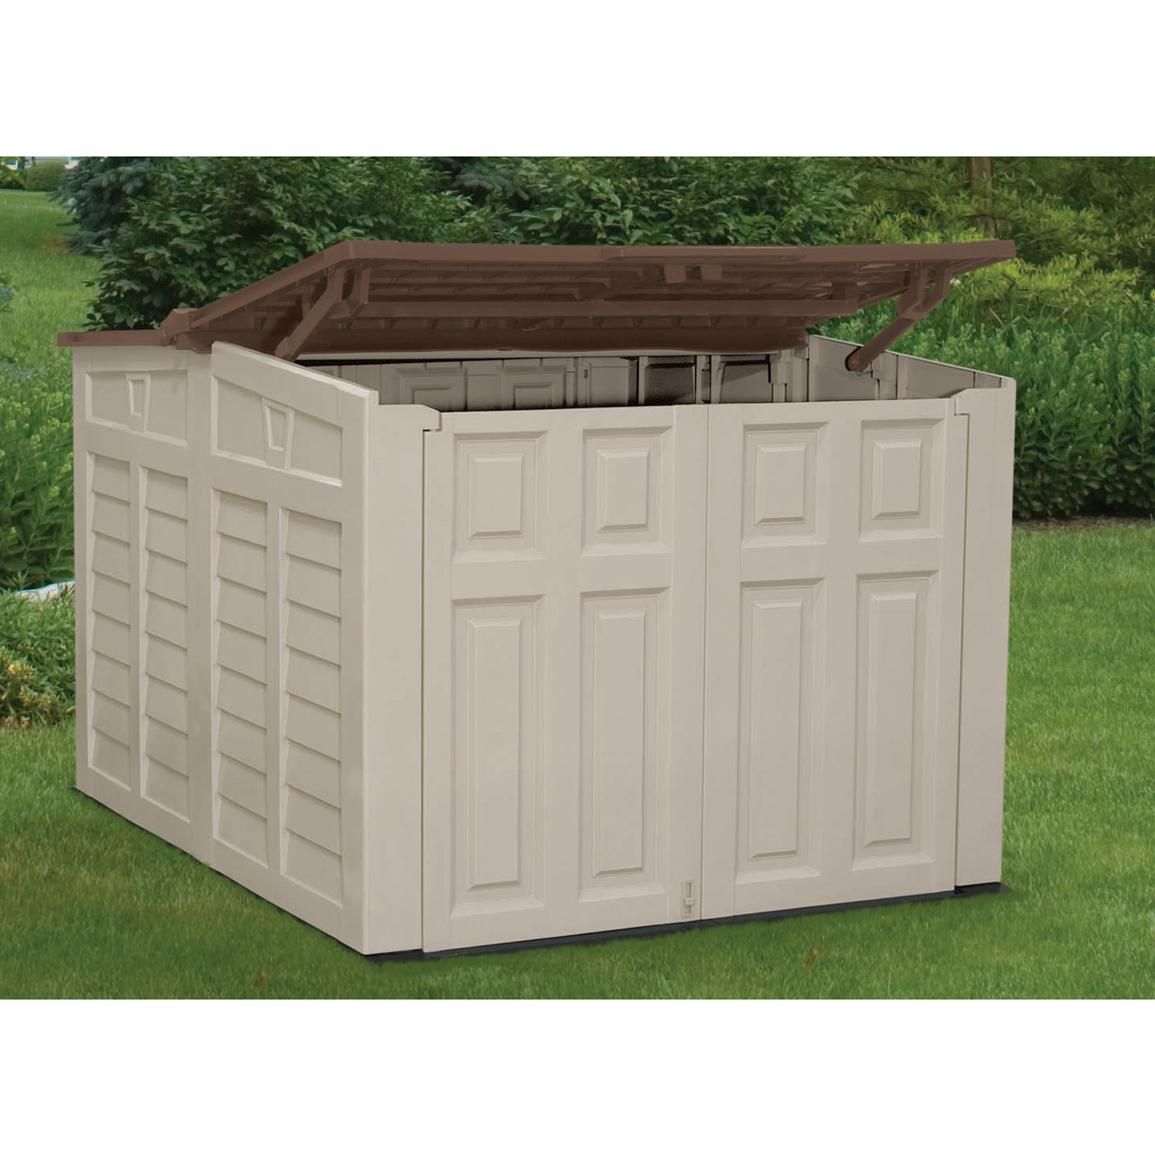 Suncast 174 Low Profile Shed 138475 Patio Storage At